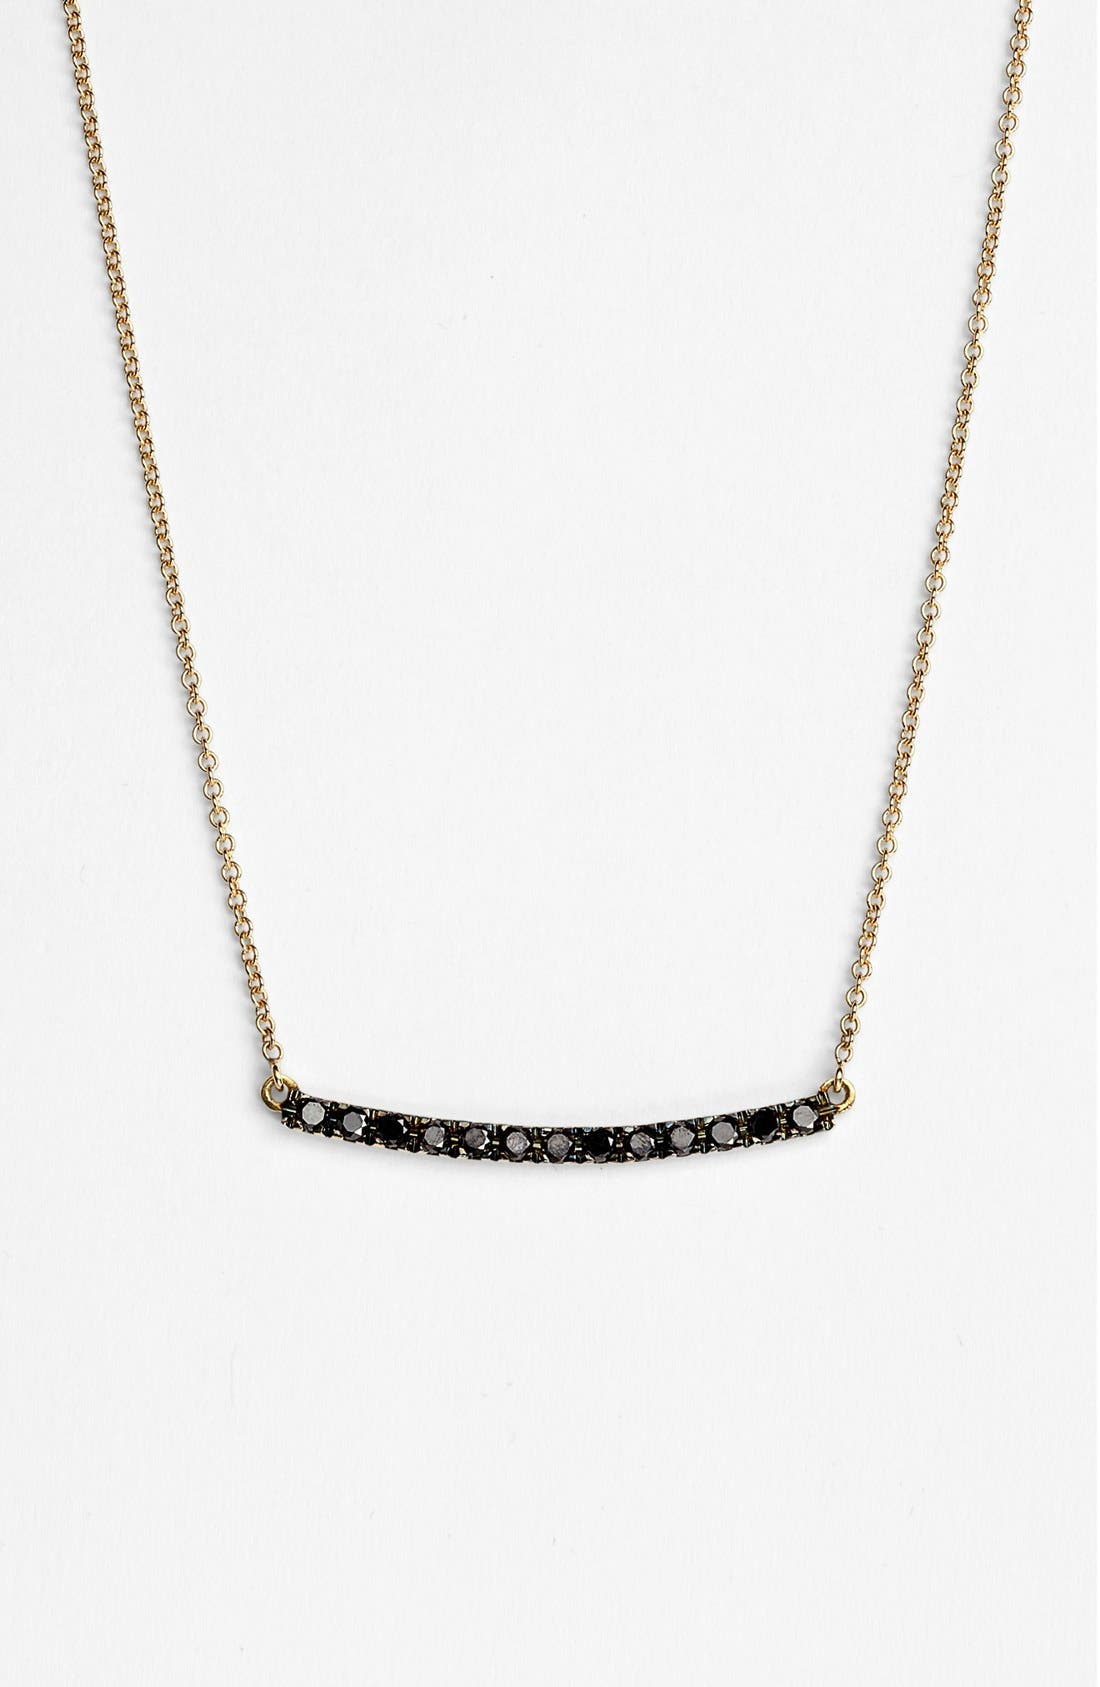 Alternate Image 1 Selected - Bony Levy 'Stick' Pavé Black Diamond Bar Necklace (Nordstrom Exclusive)